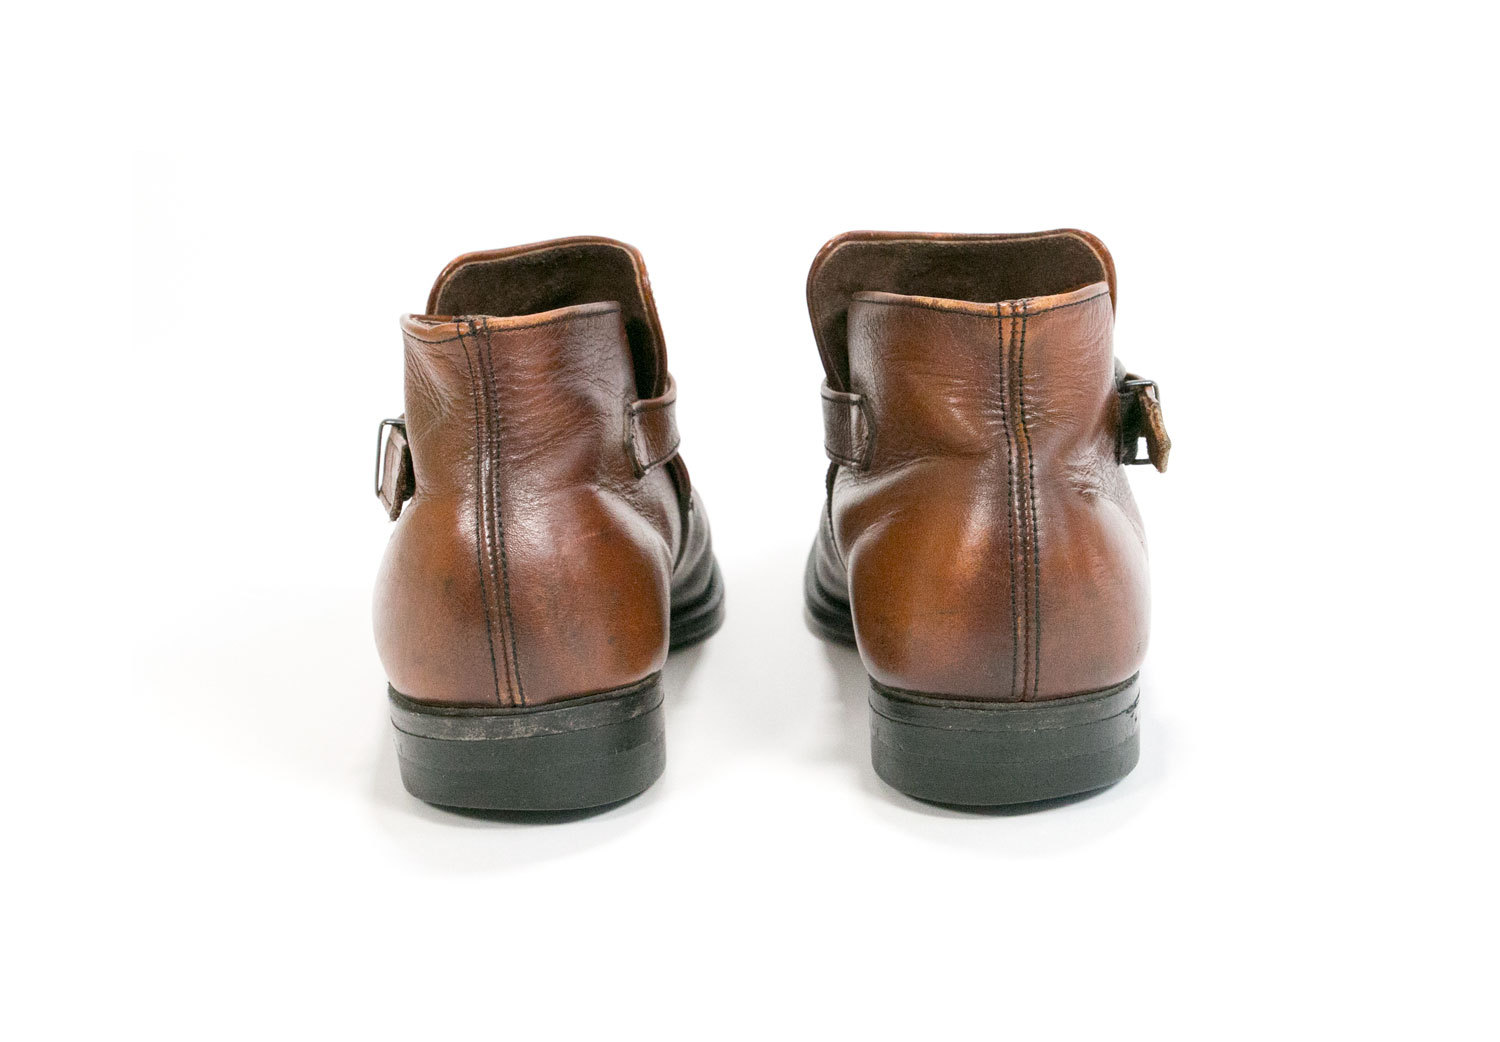 Vintage 1960's Brown Leather Ankle Boots //  Men's Size 8 Women's Size 9 // Leather Classics by Mason //  Mod // Beatle // Hipster // Retro